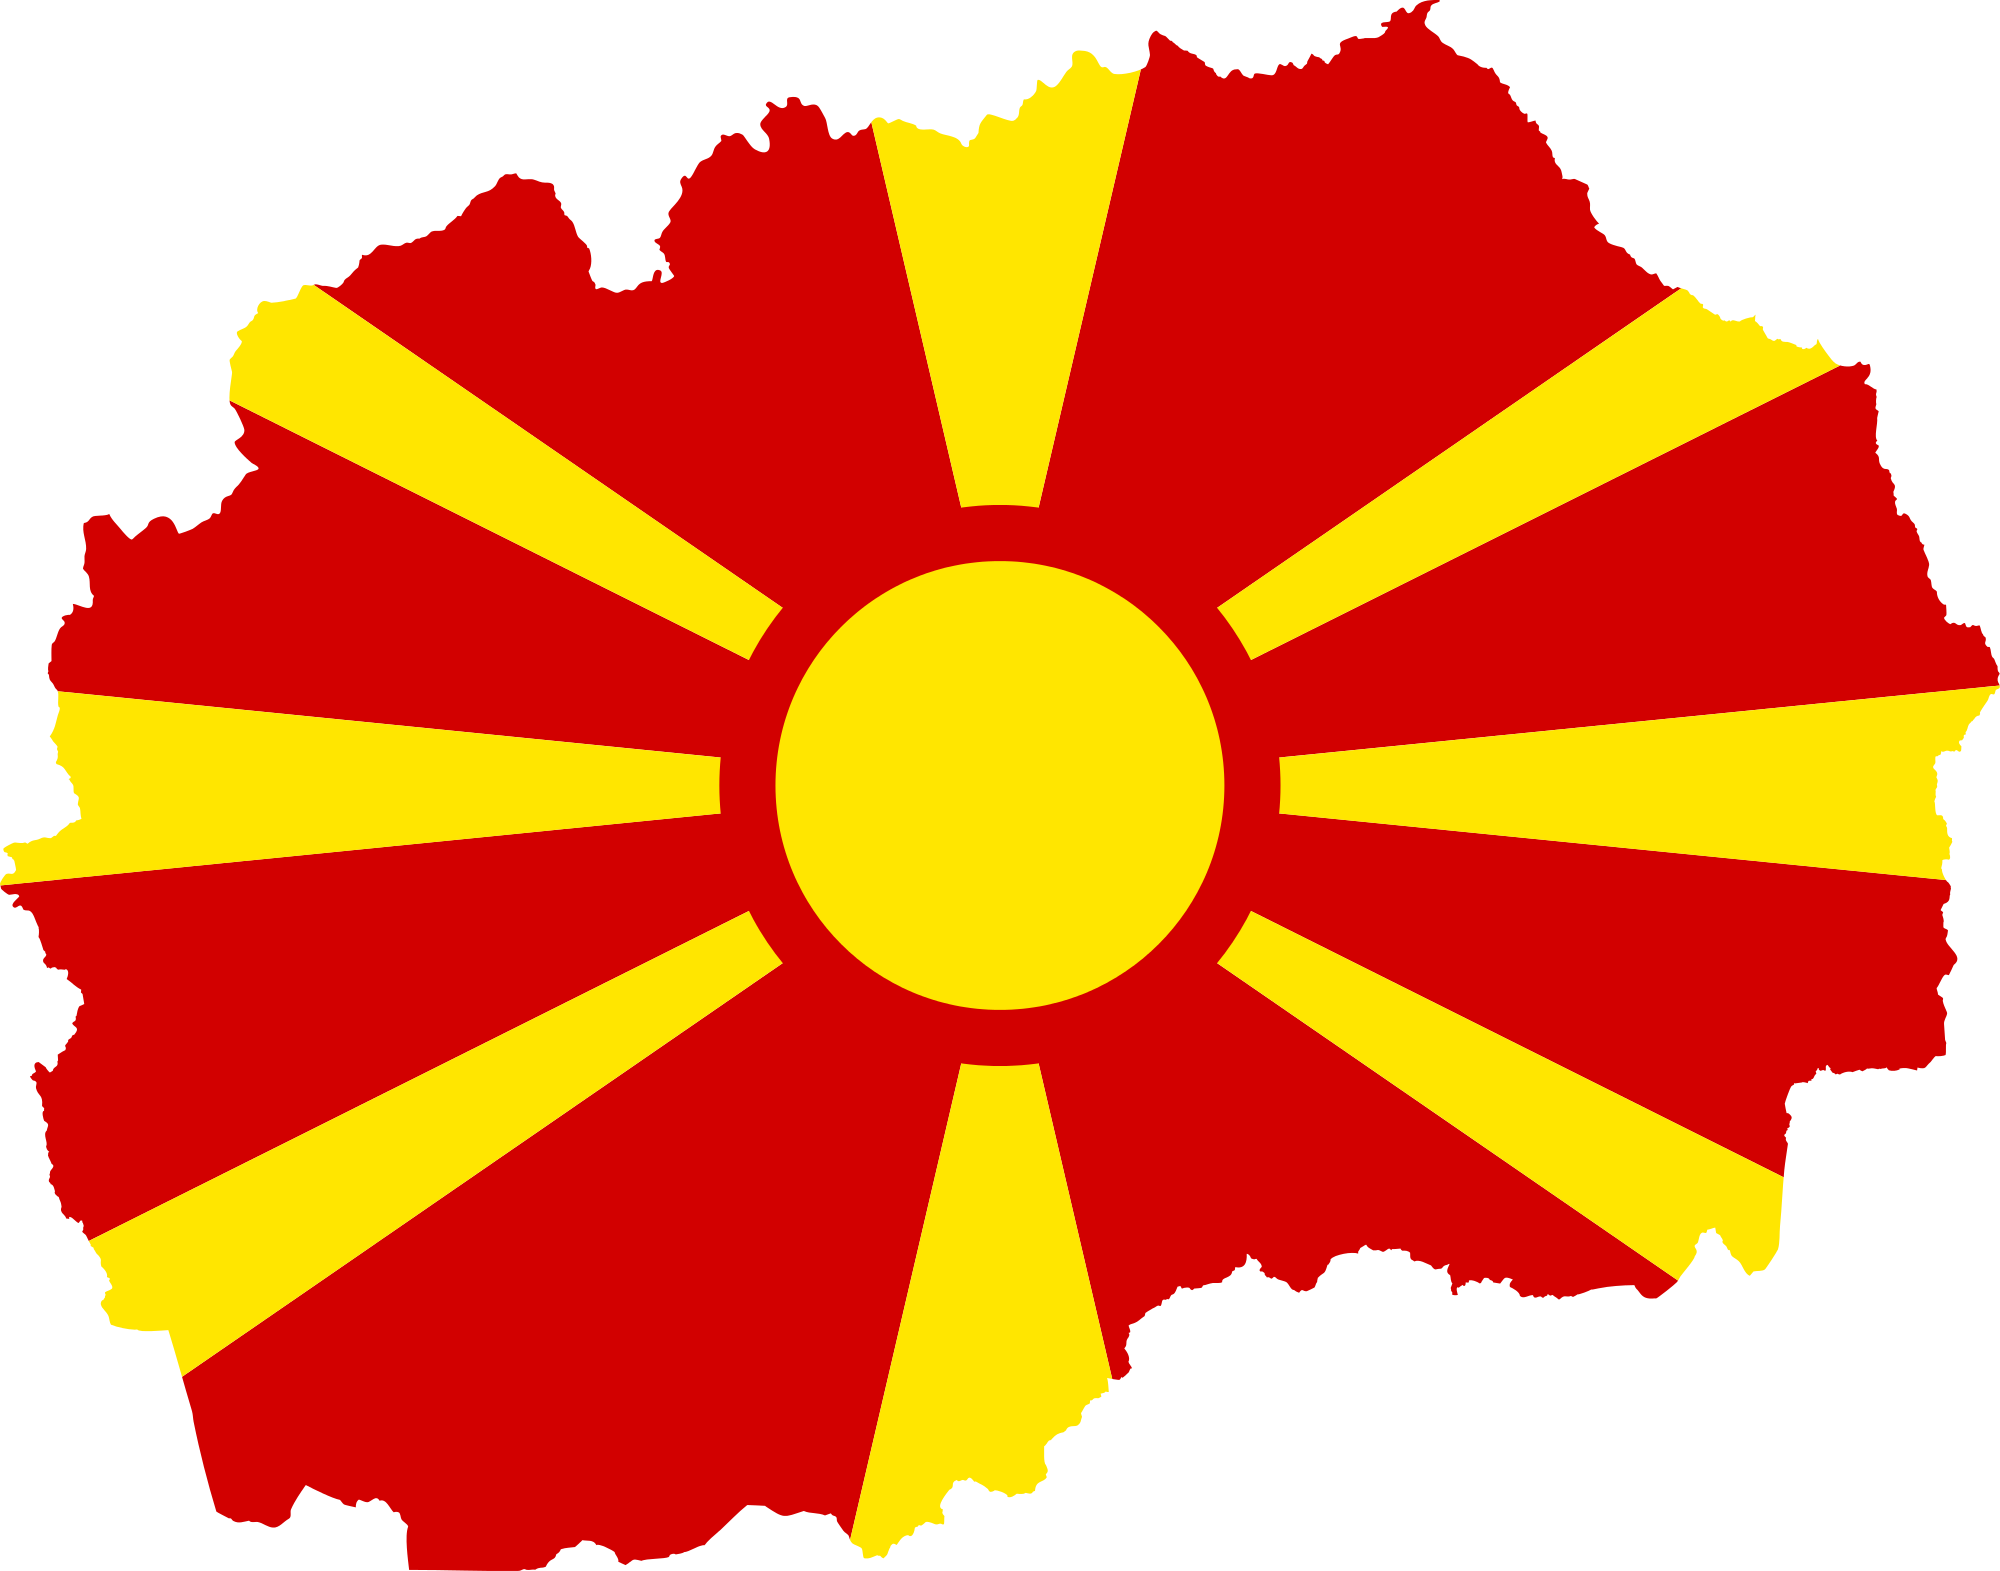 Flag Of The Republic Of Macedonia High Quality Background on Wallpapers Vista